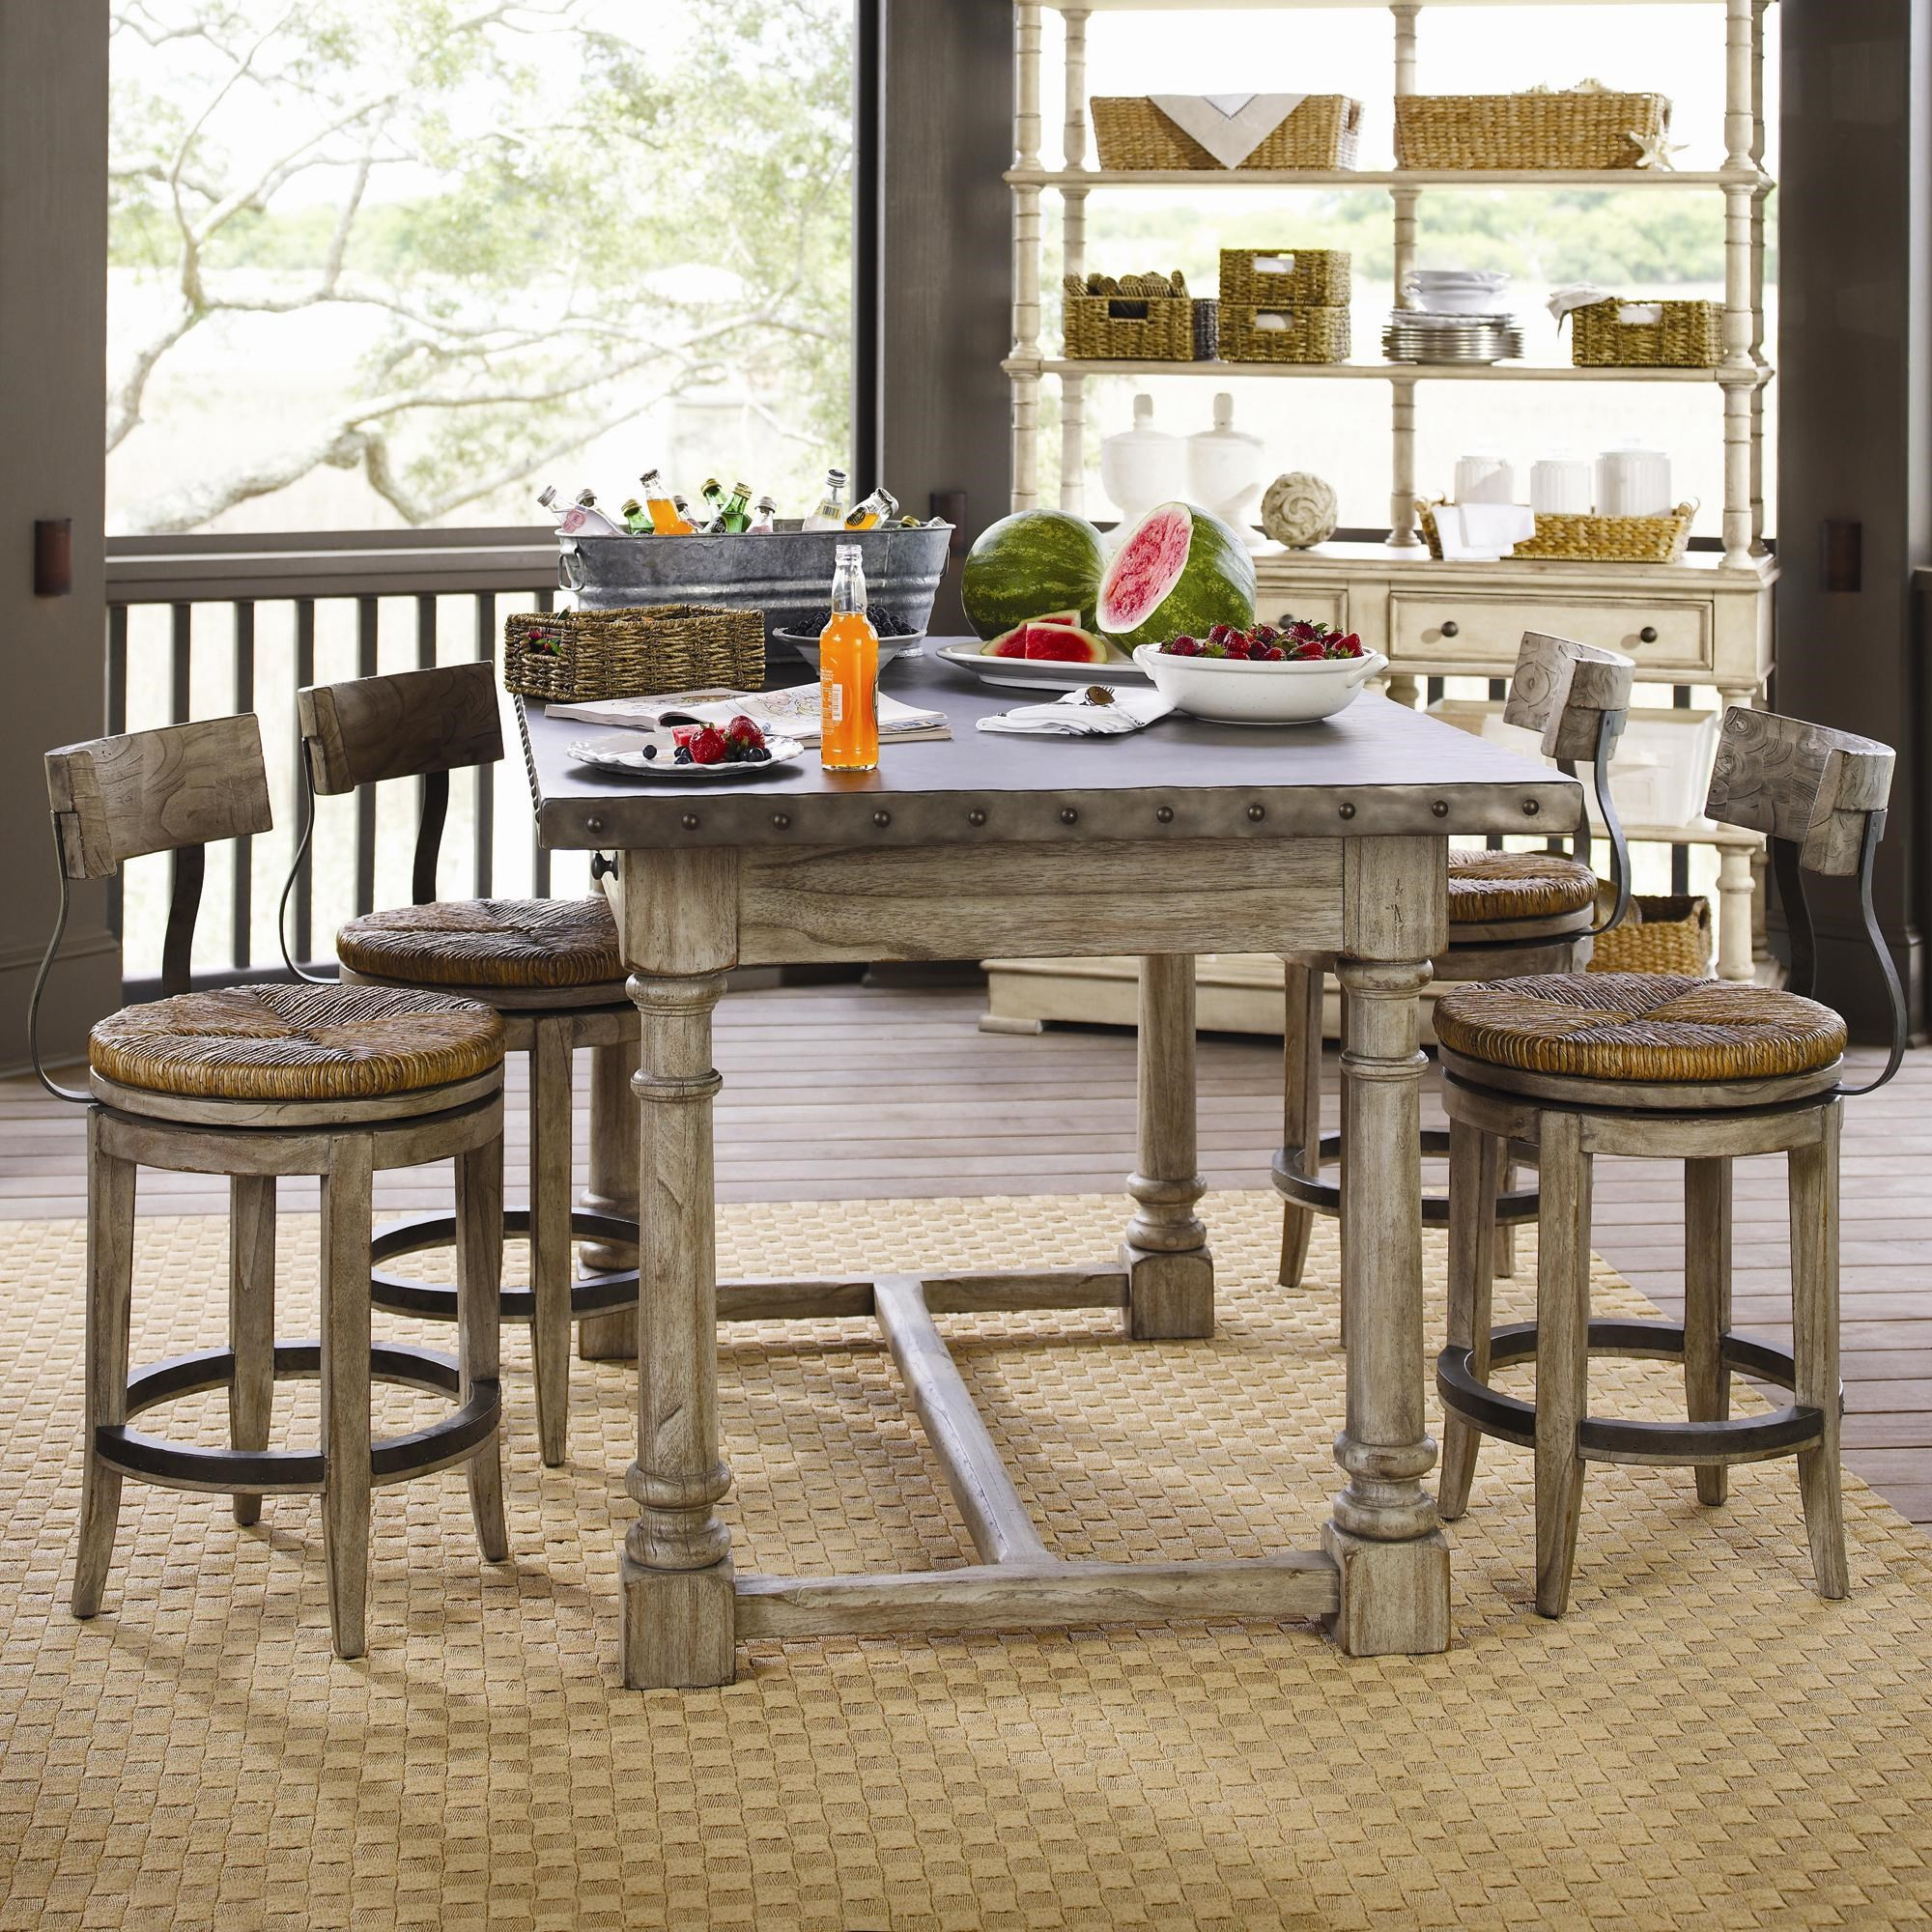 Charmant Twilight Bay 5 Piece Shelter Island Bistro Table U0026 Dalton Counter Stools Set  By Lexington